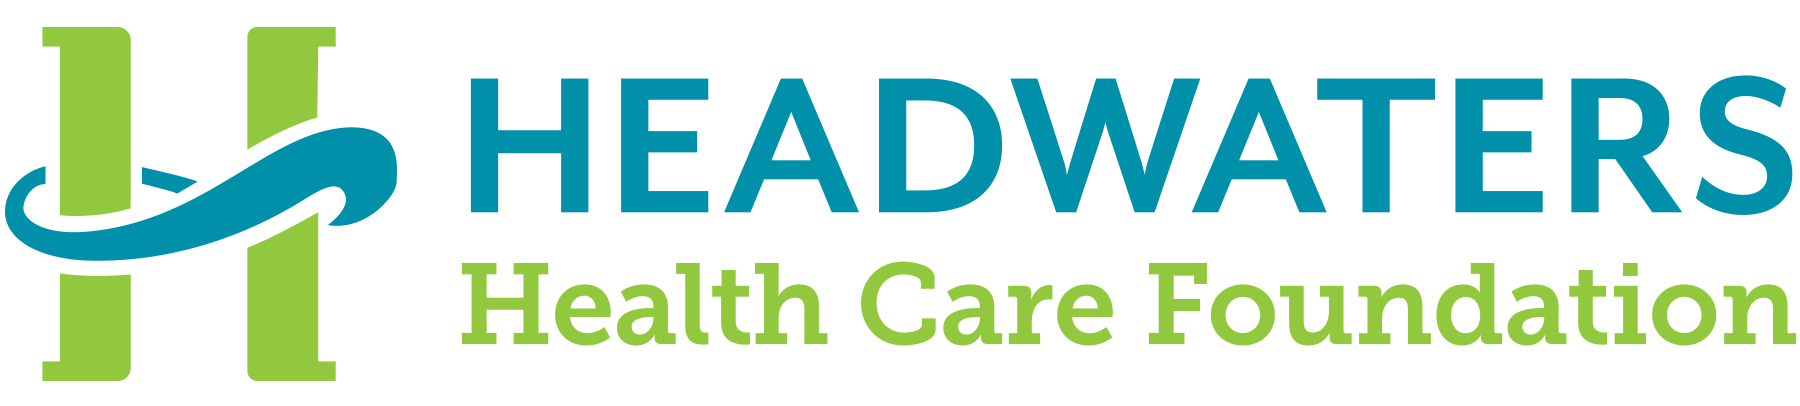 Headwaters Health Care Foundation logo